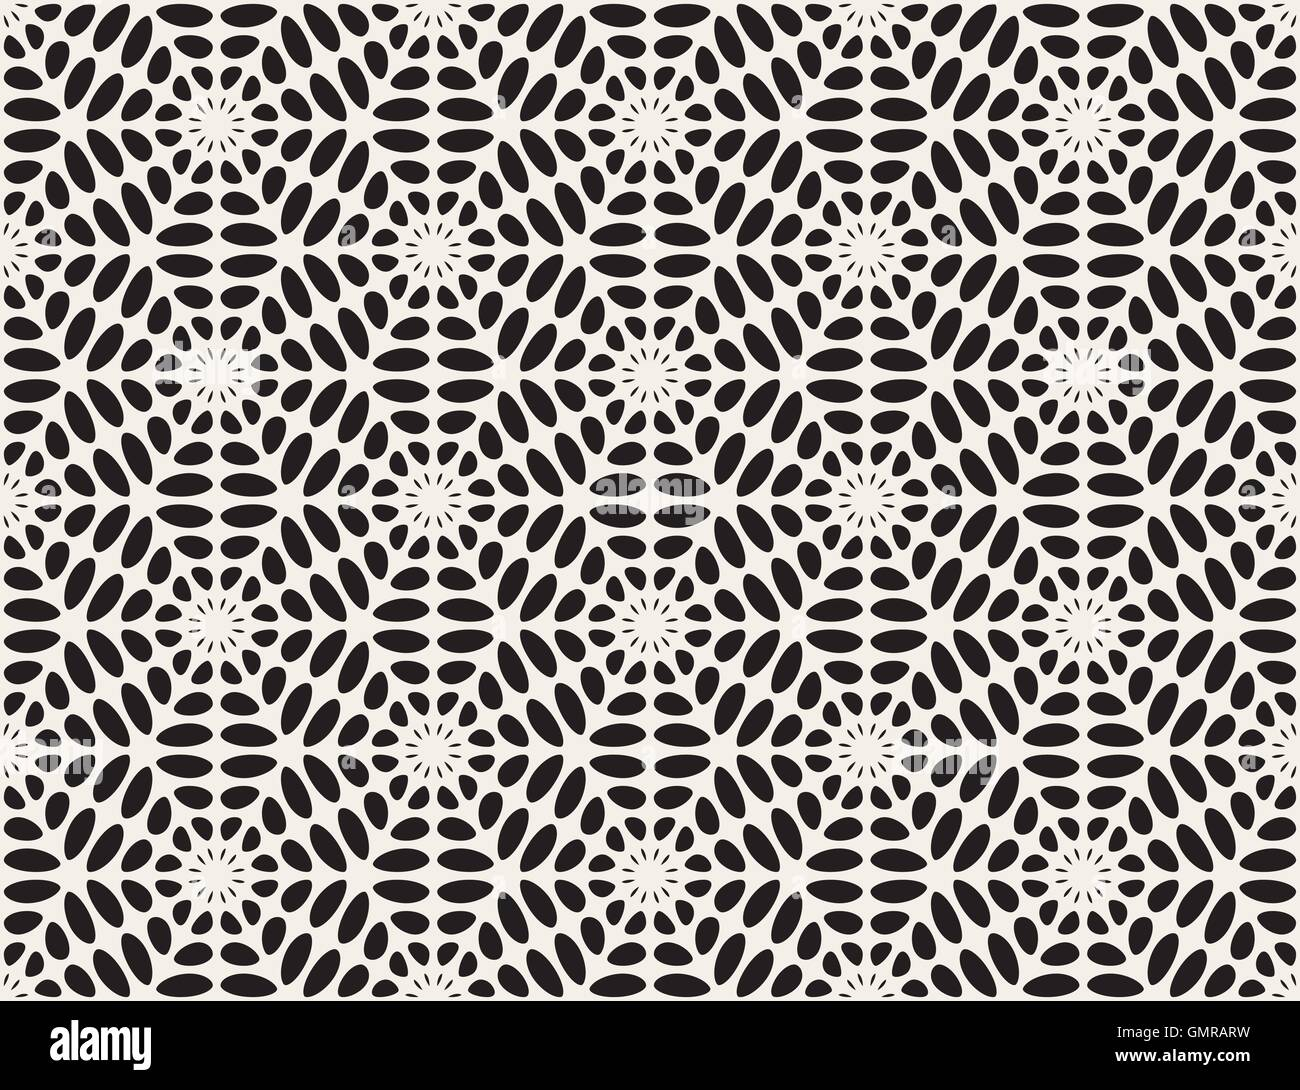 Vector Black and White Rounded Ellipse Lace Star Pattern Stock ...